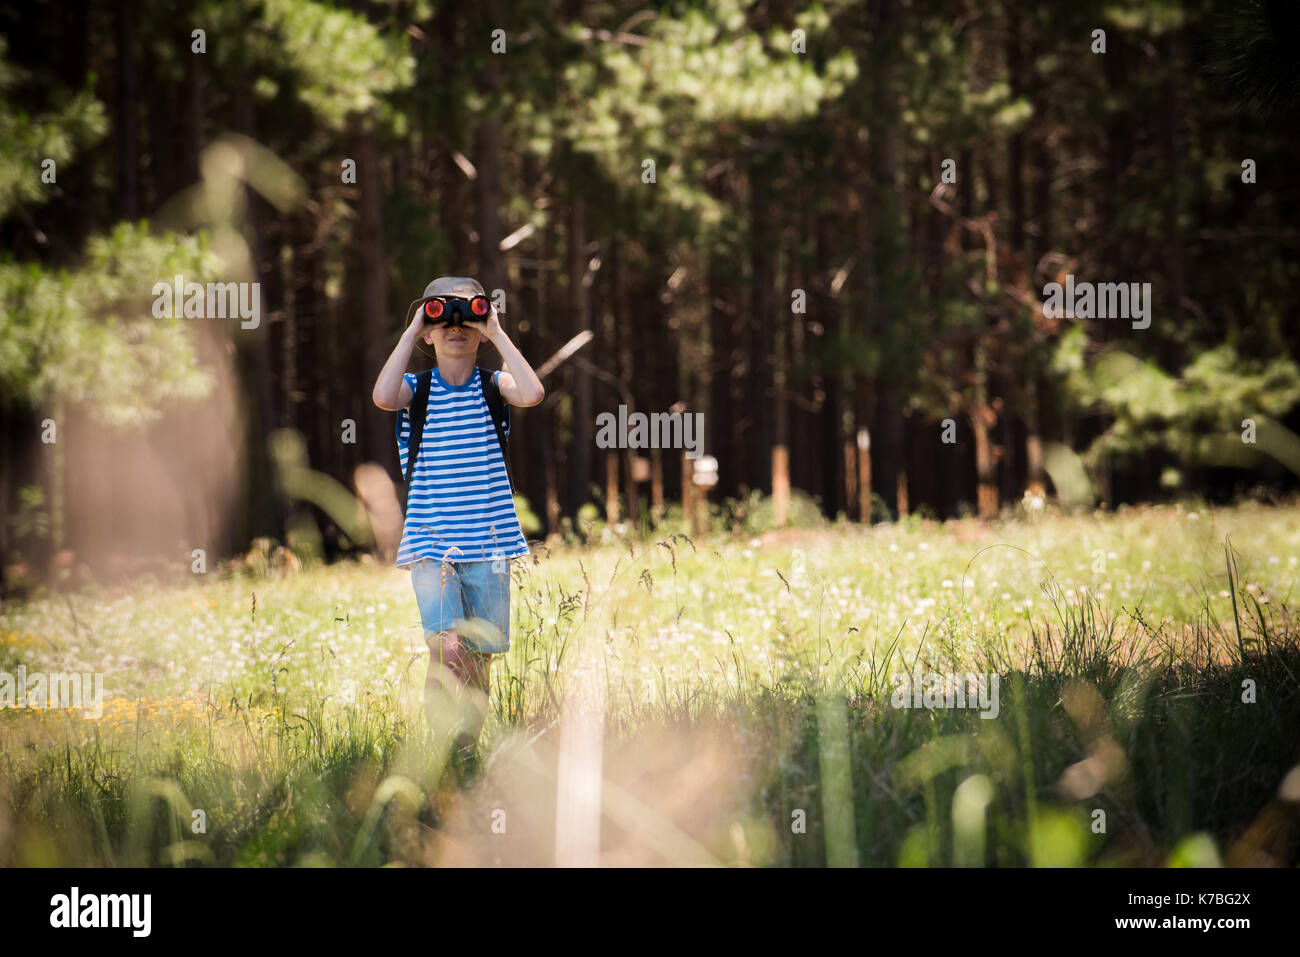 Boy exploring outdoors with binoculars - Stock Image